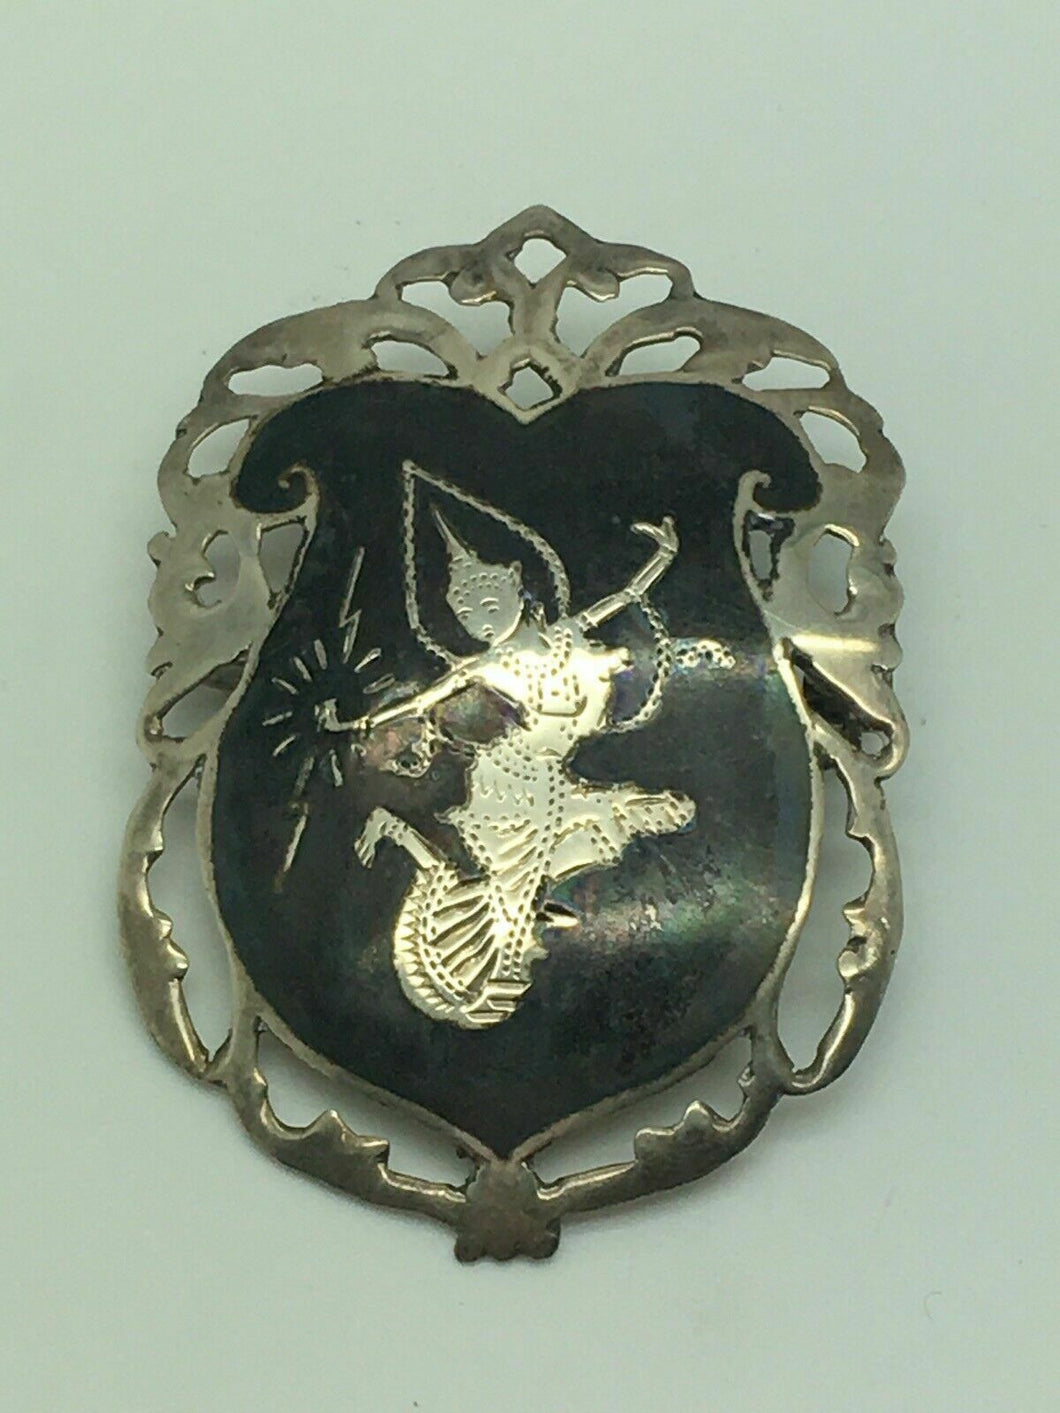 SIAM STERLING SILVER BROOCH - LOT 4147R